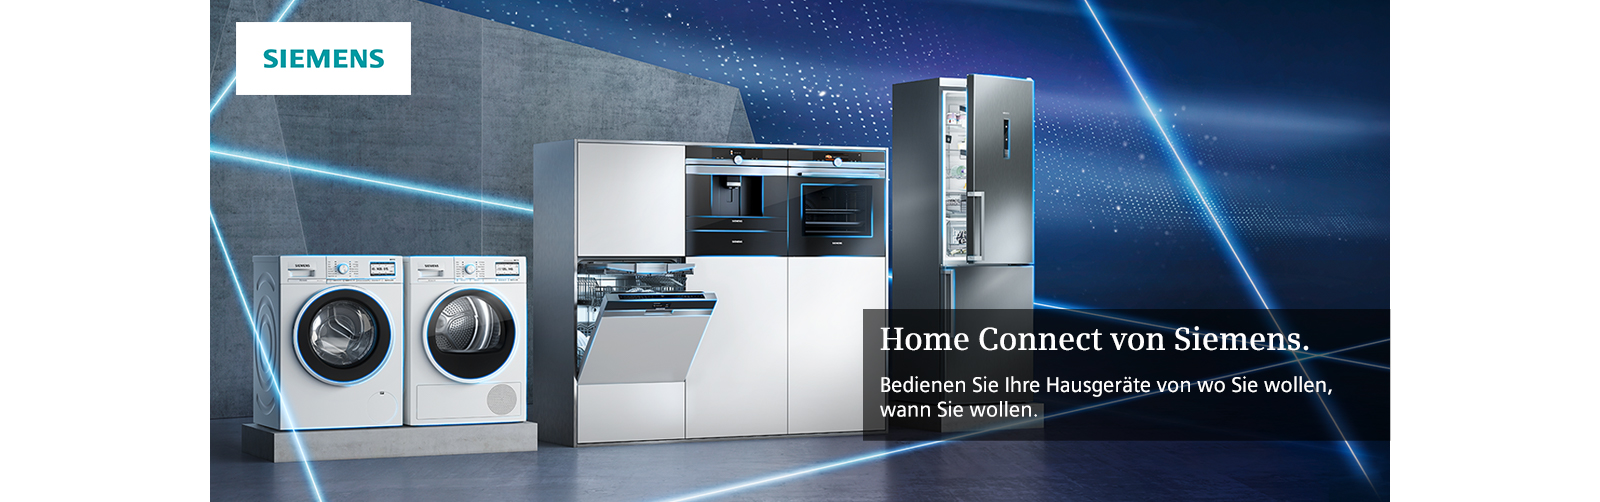 Siemens homeConnect